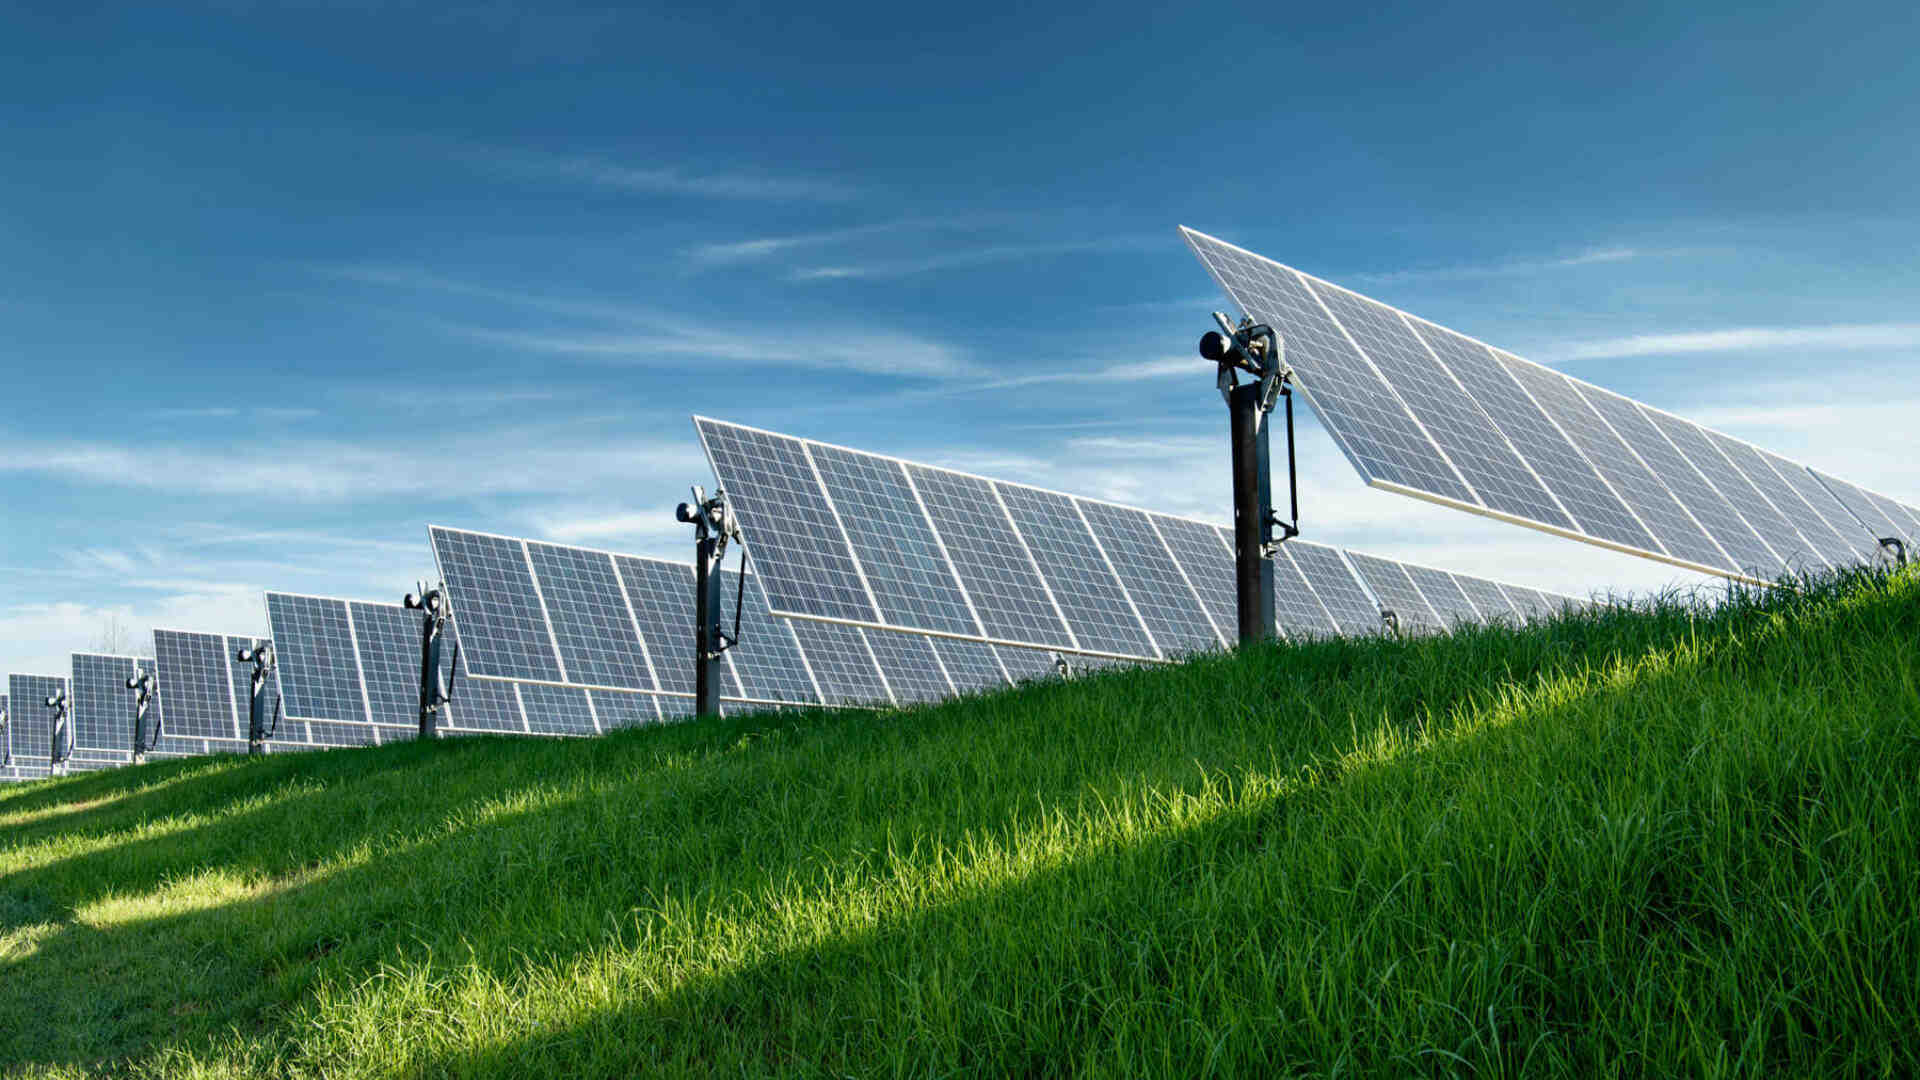 Which country is the cheapest producer of solar power in the world?